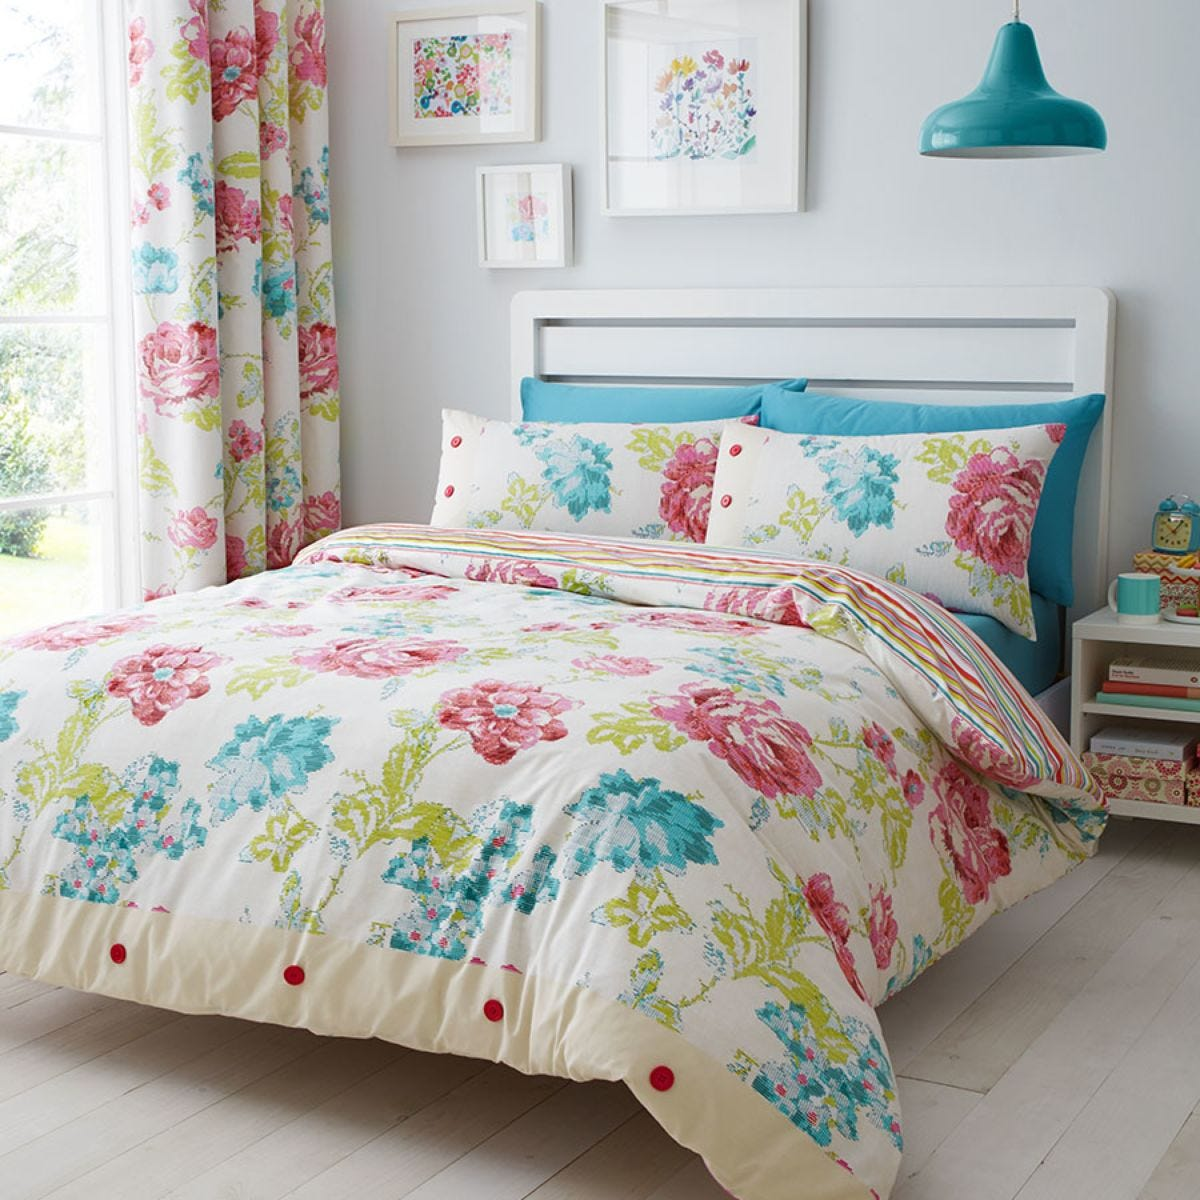 Catherine Lansfield Stab Stitch Floral Bed Set - Multi